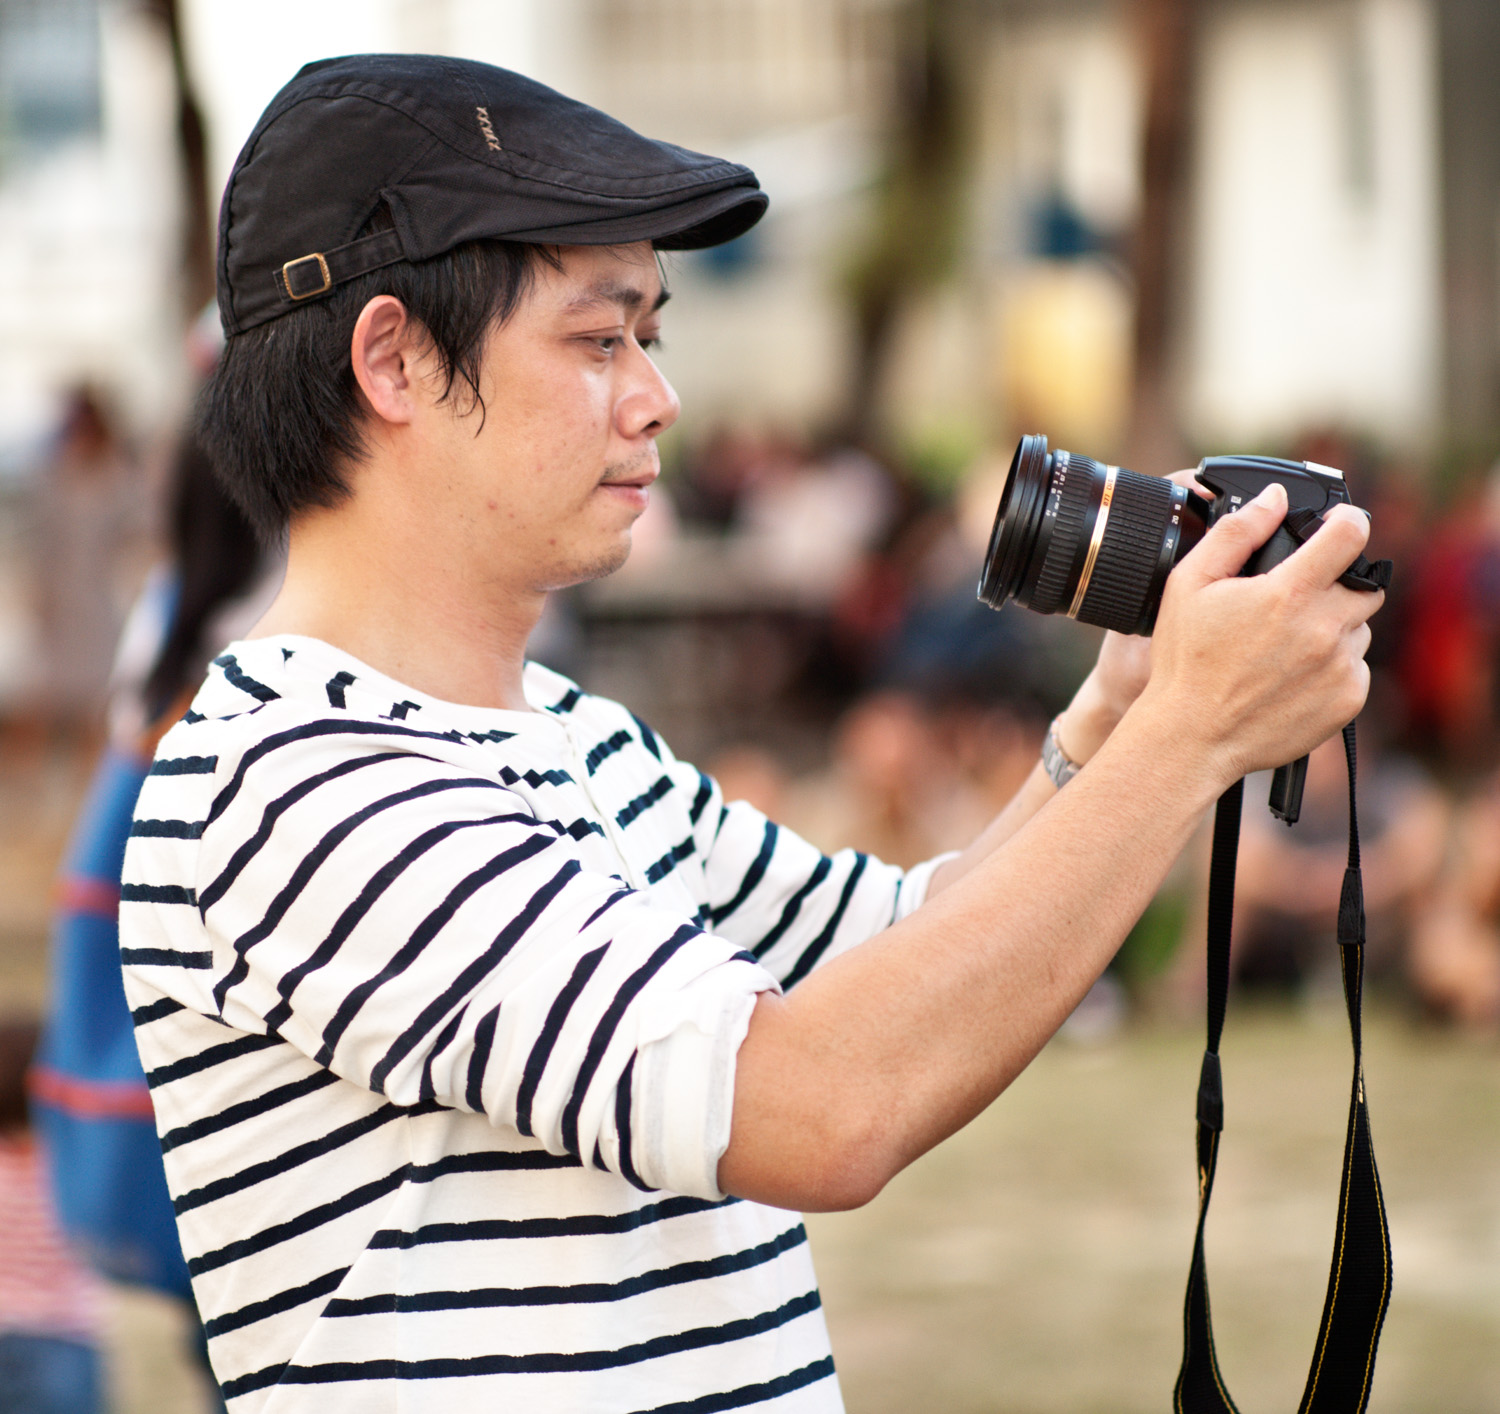 Photographer at an Outdoor Event - Pros and Cons of Upgrading from a Phone to a Real Camera